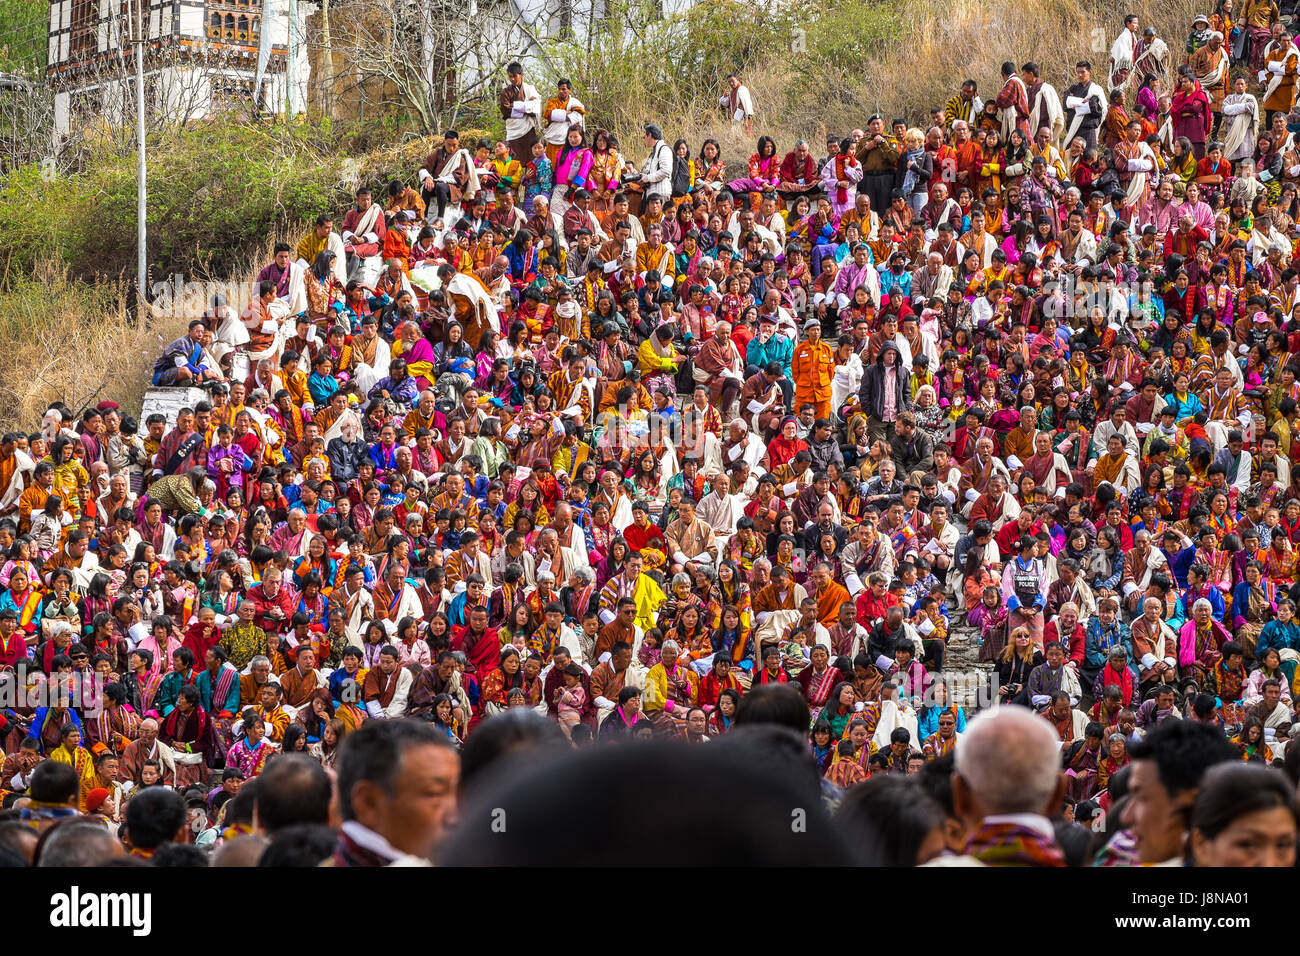 King and Queen Of Bhutan sitting among their subjects at Paro Tsechu, the biggest religious festival celebrated - Stock Image